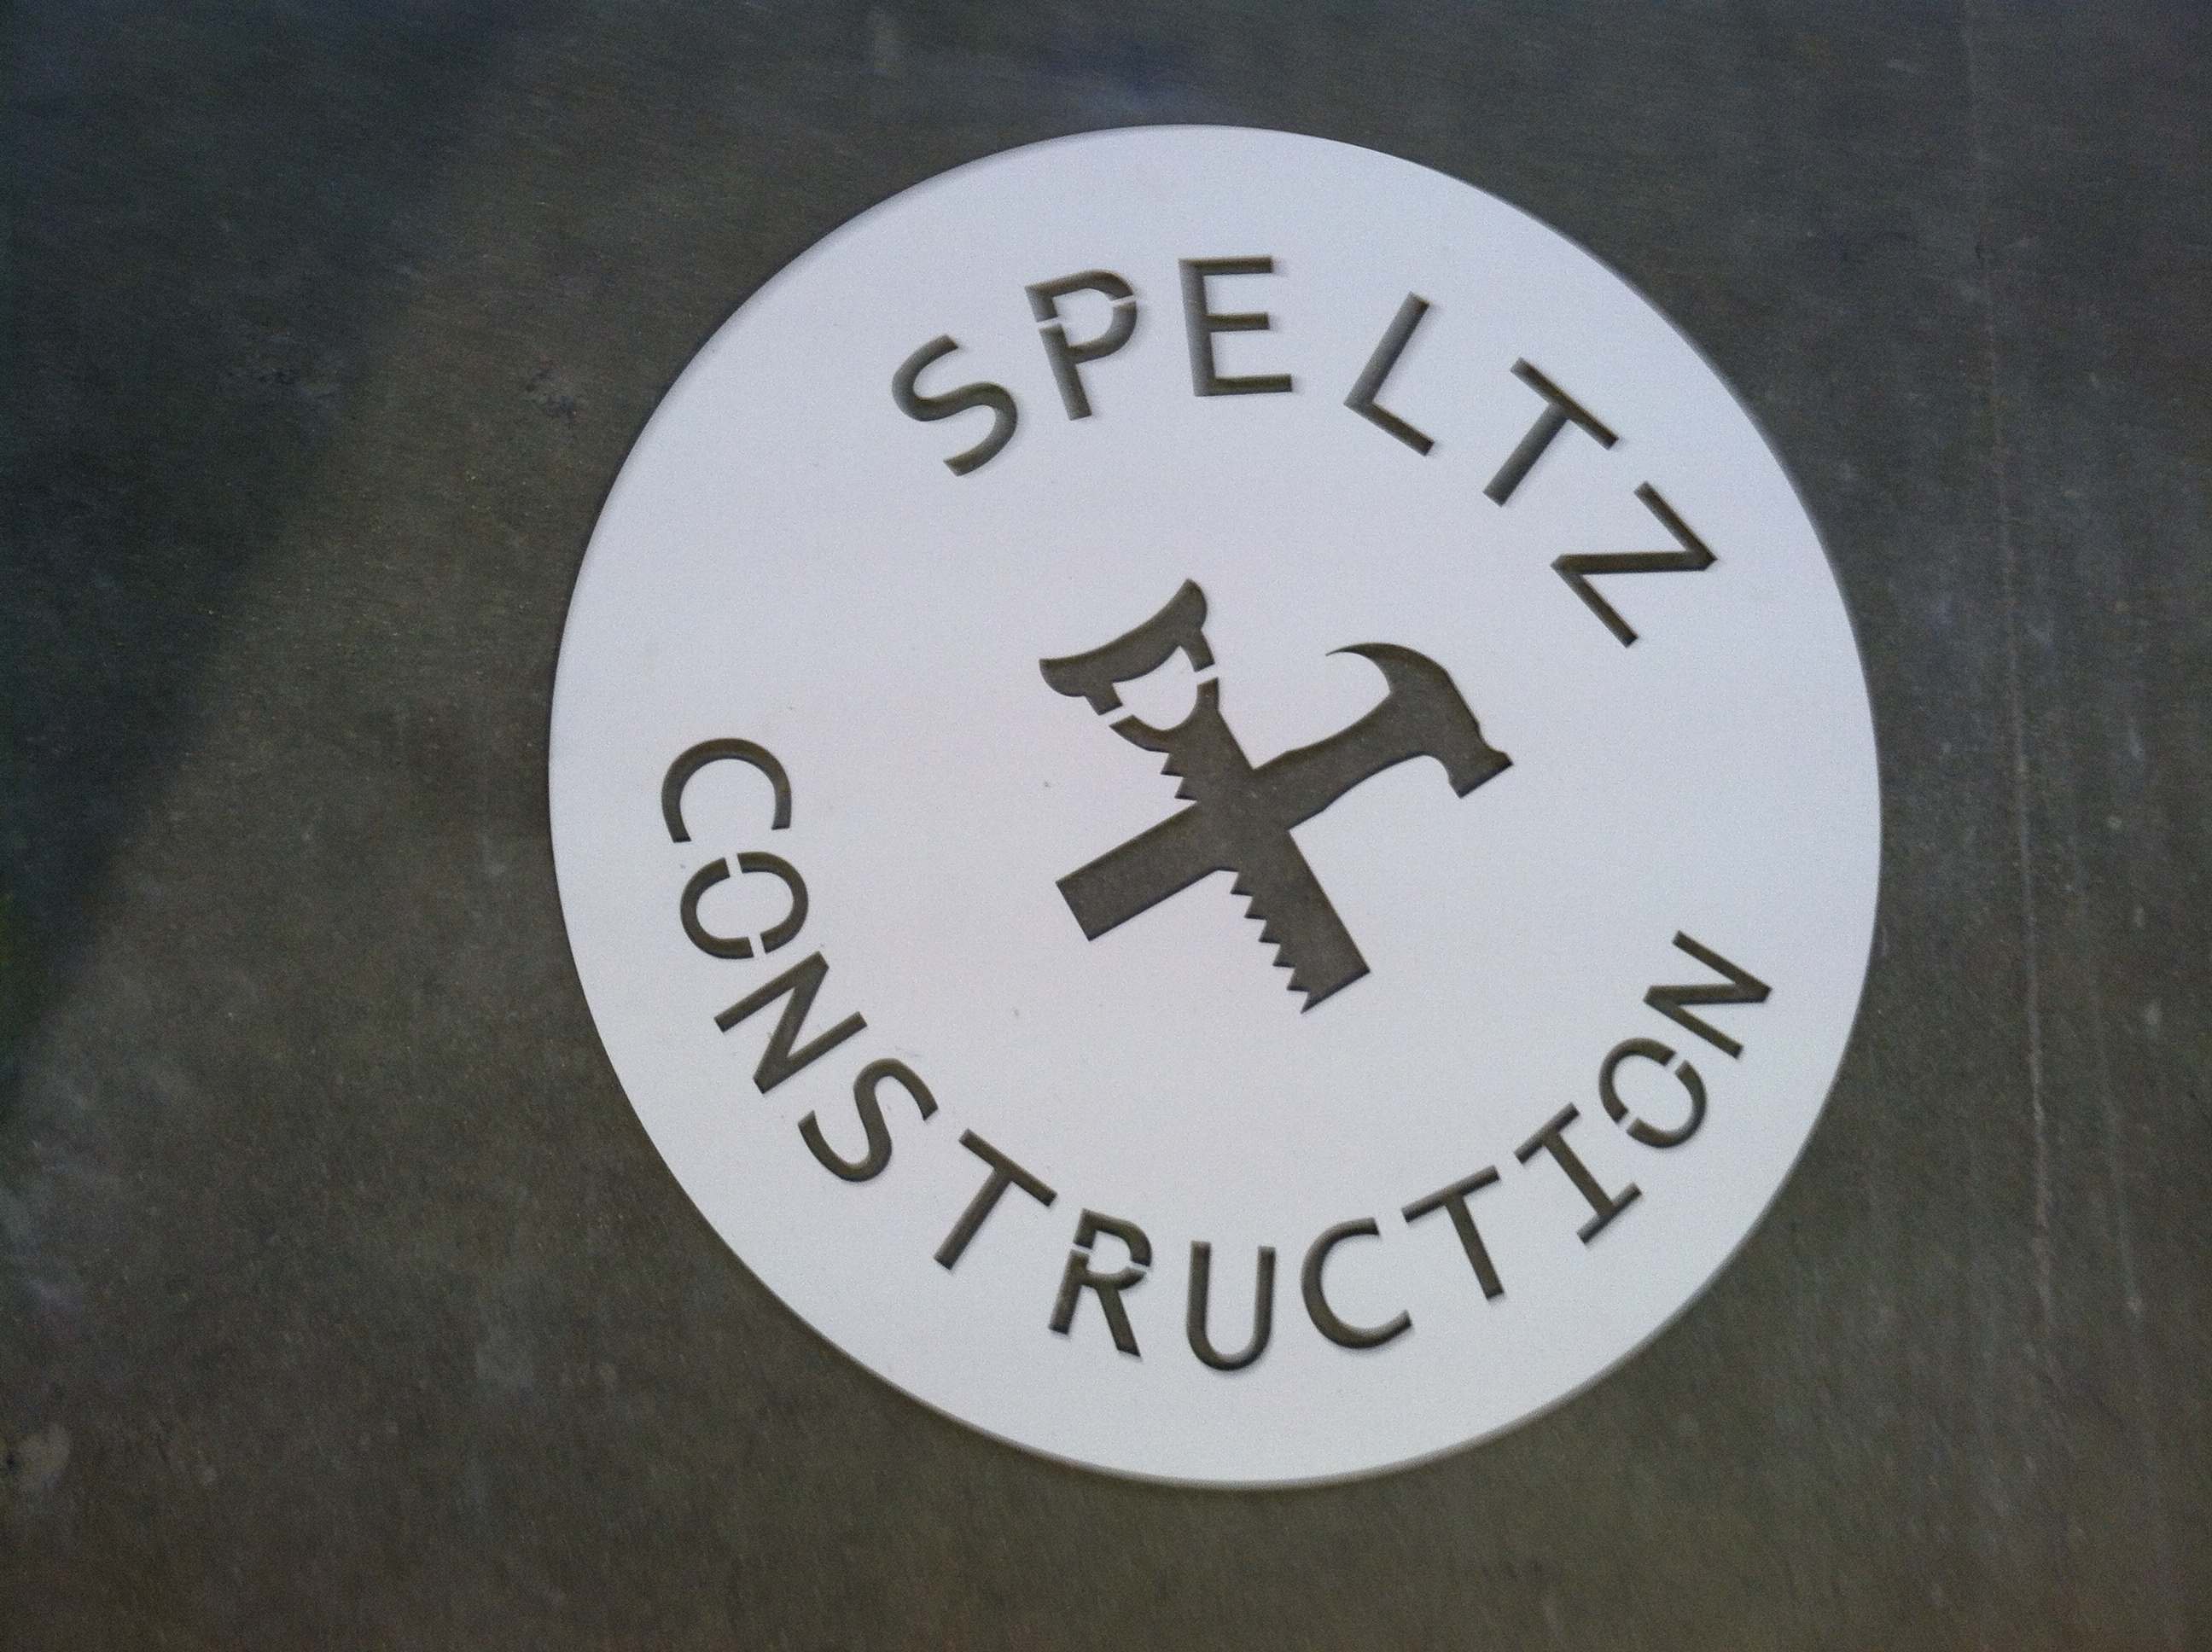 Metal sign of Speltz Construction